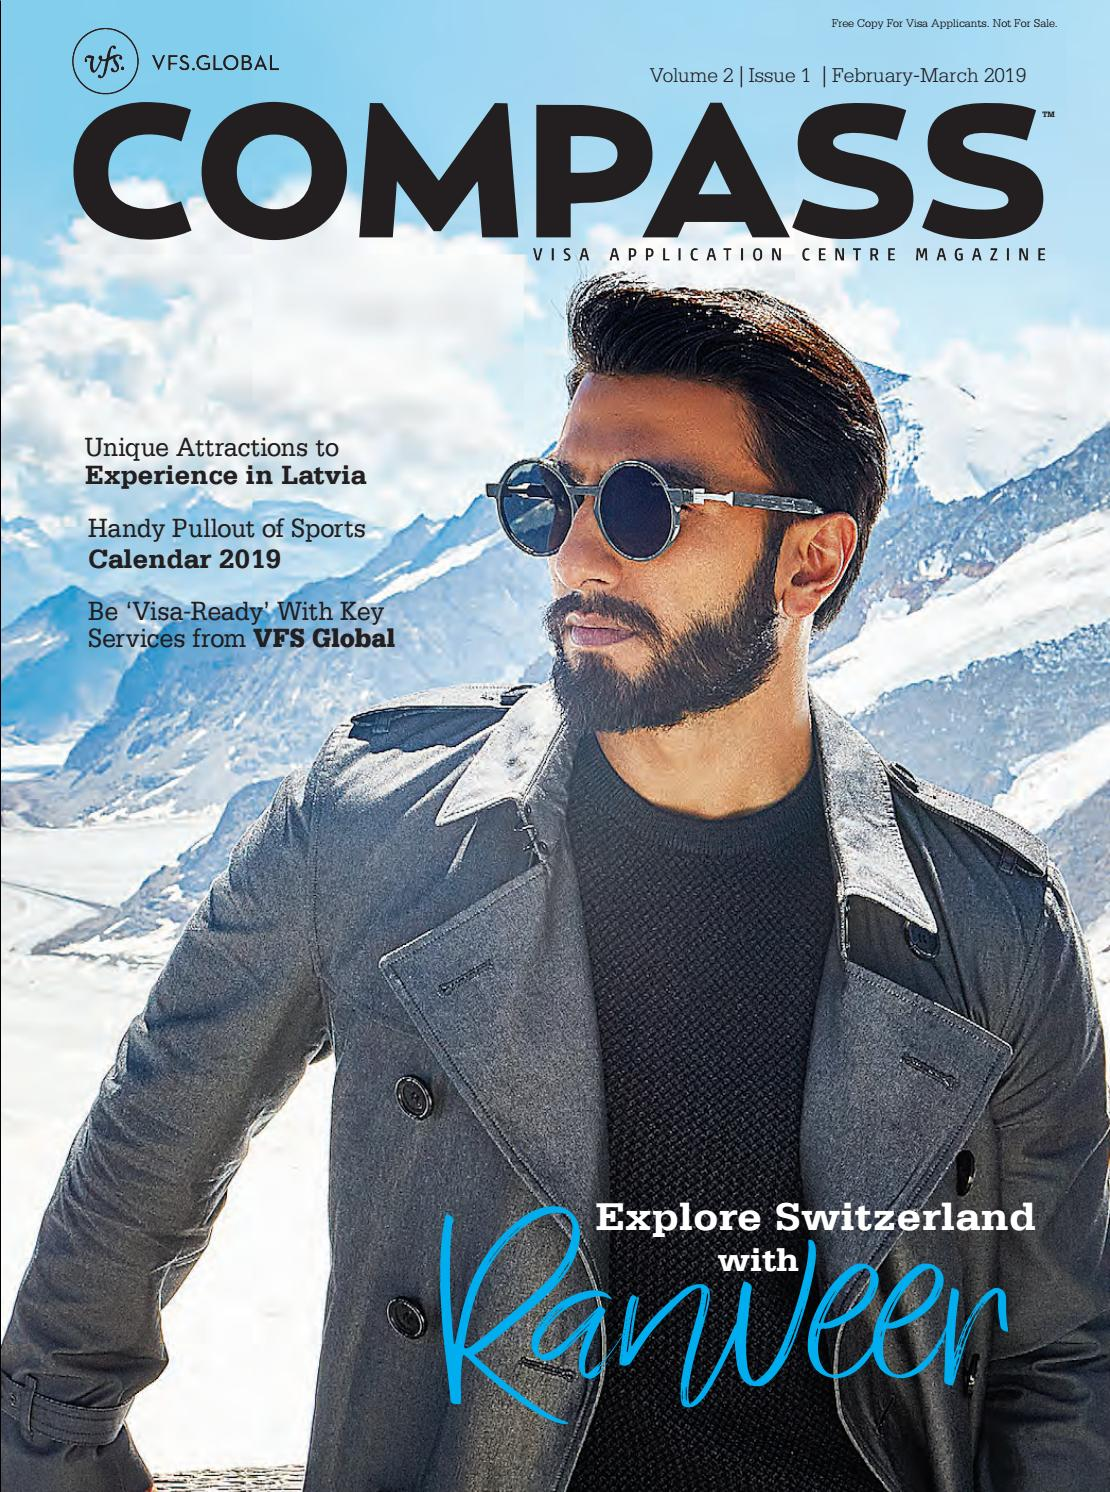 VFS Global COMPASS (India Edition) February - March 2019 by